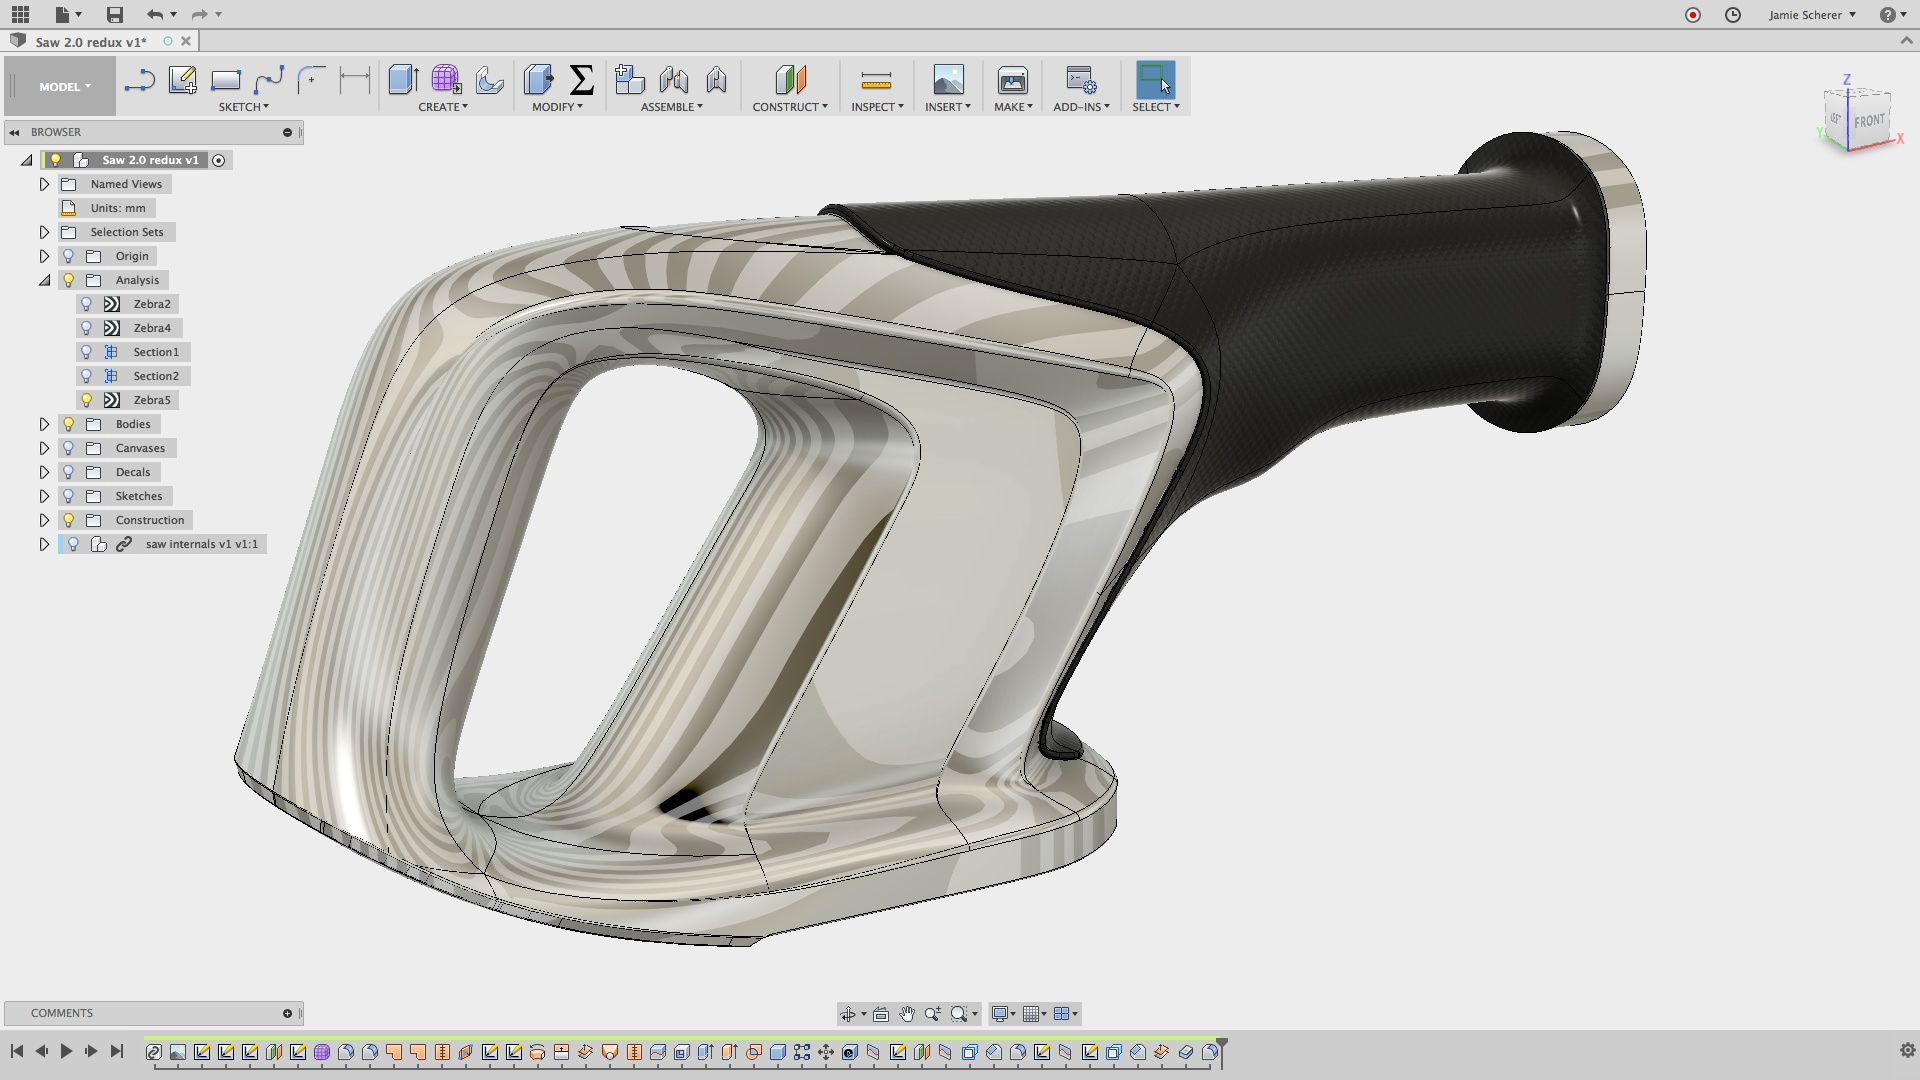 Get Started with Fusion 360 | Tutorials & Videos | Autodesk